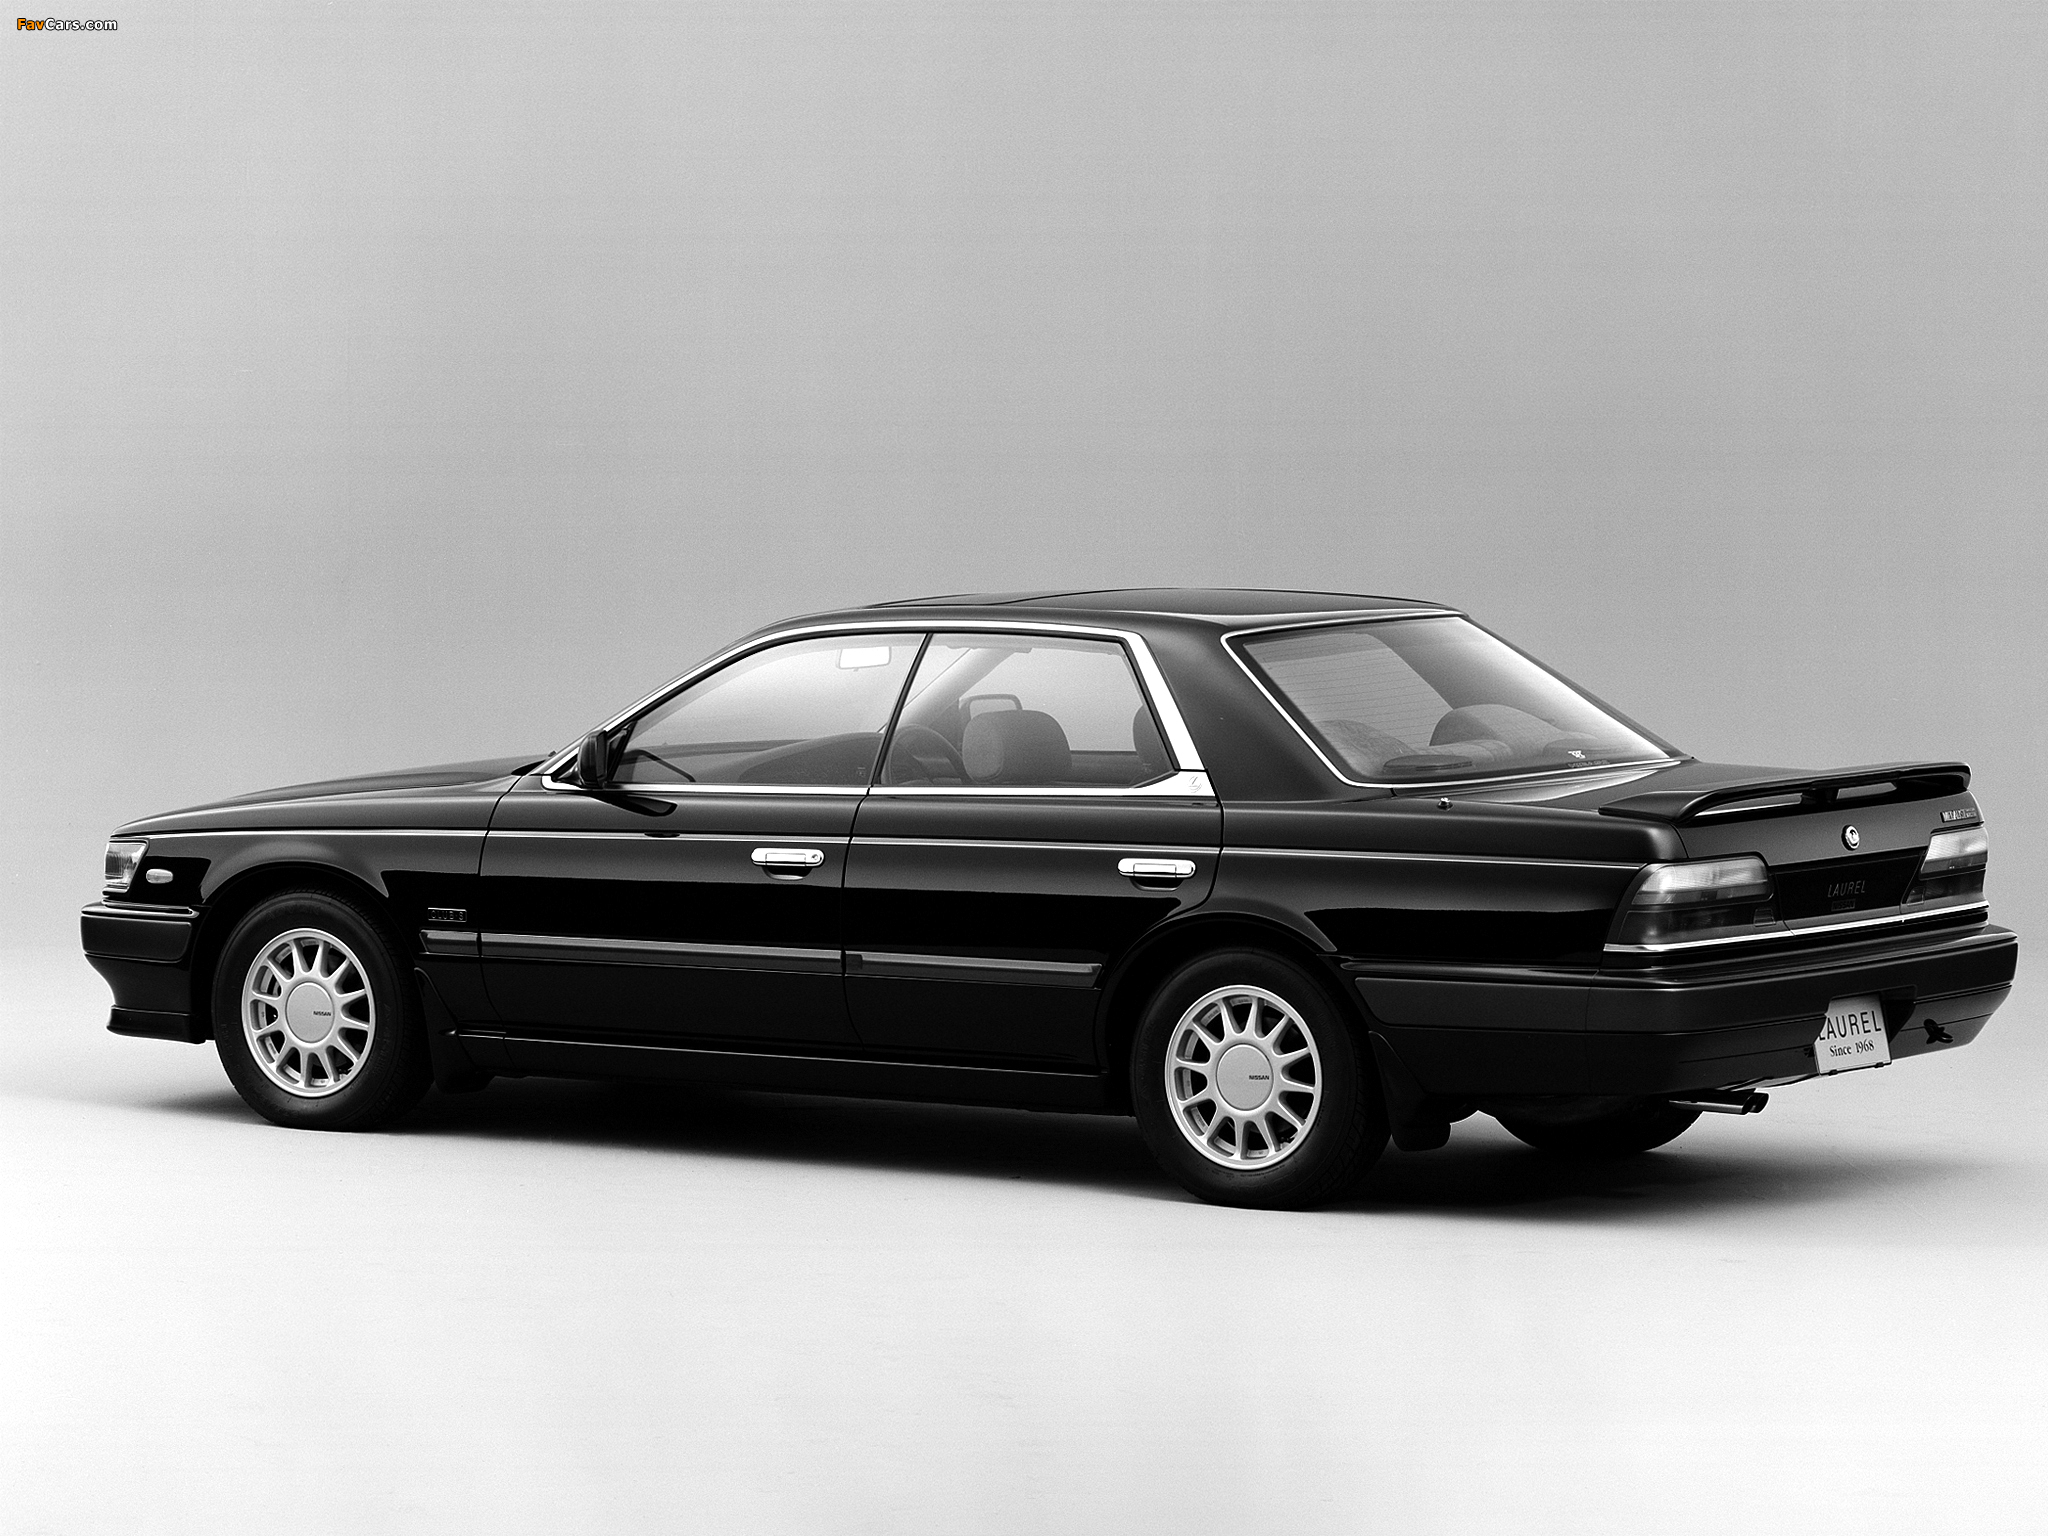 1989 Nissan Laurel #7